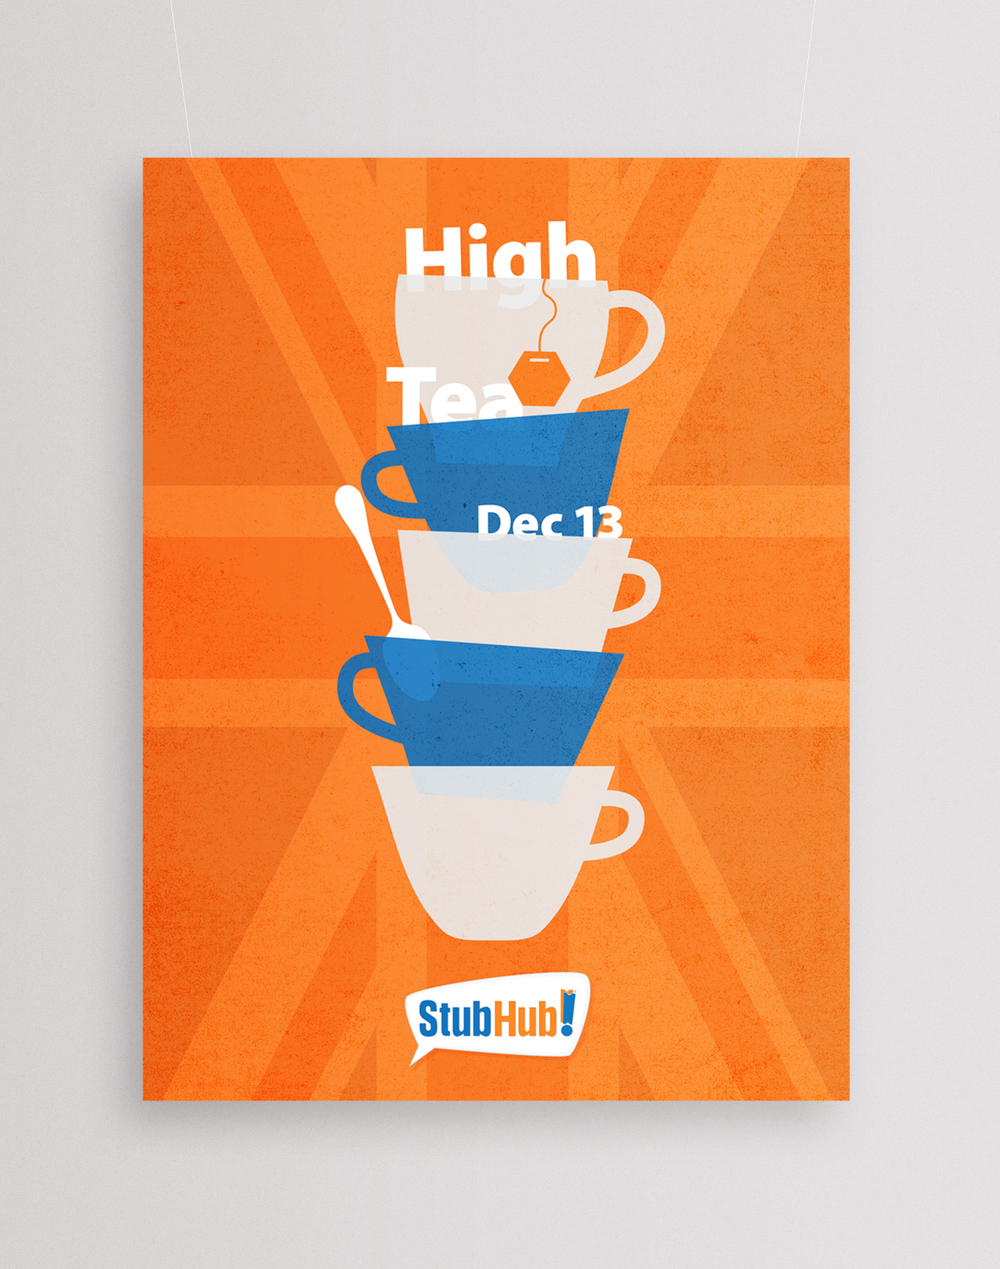 stubhub_High-Tea_Poster.jpg